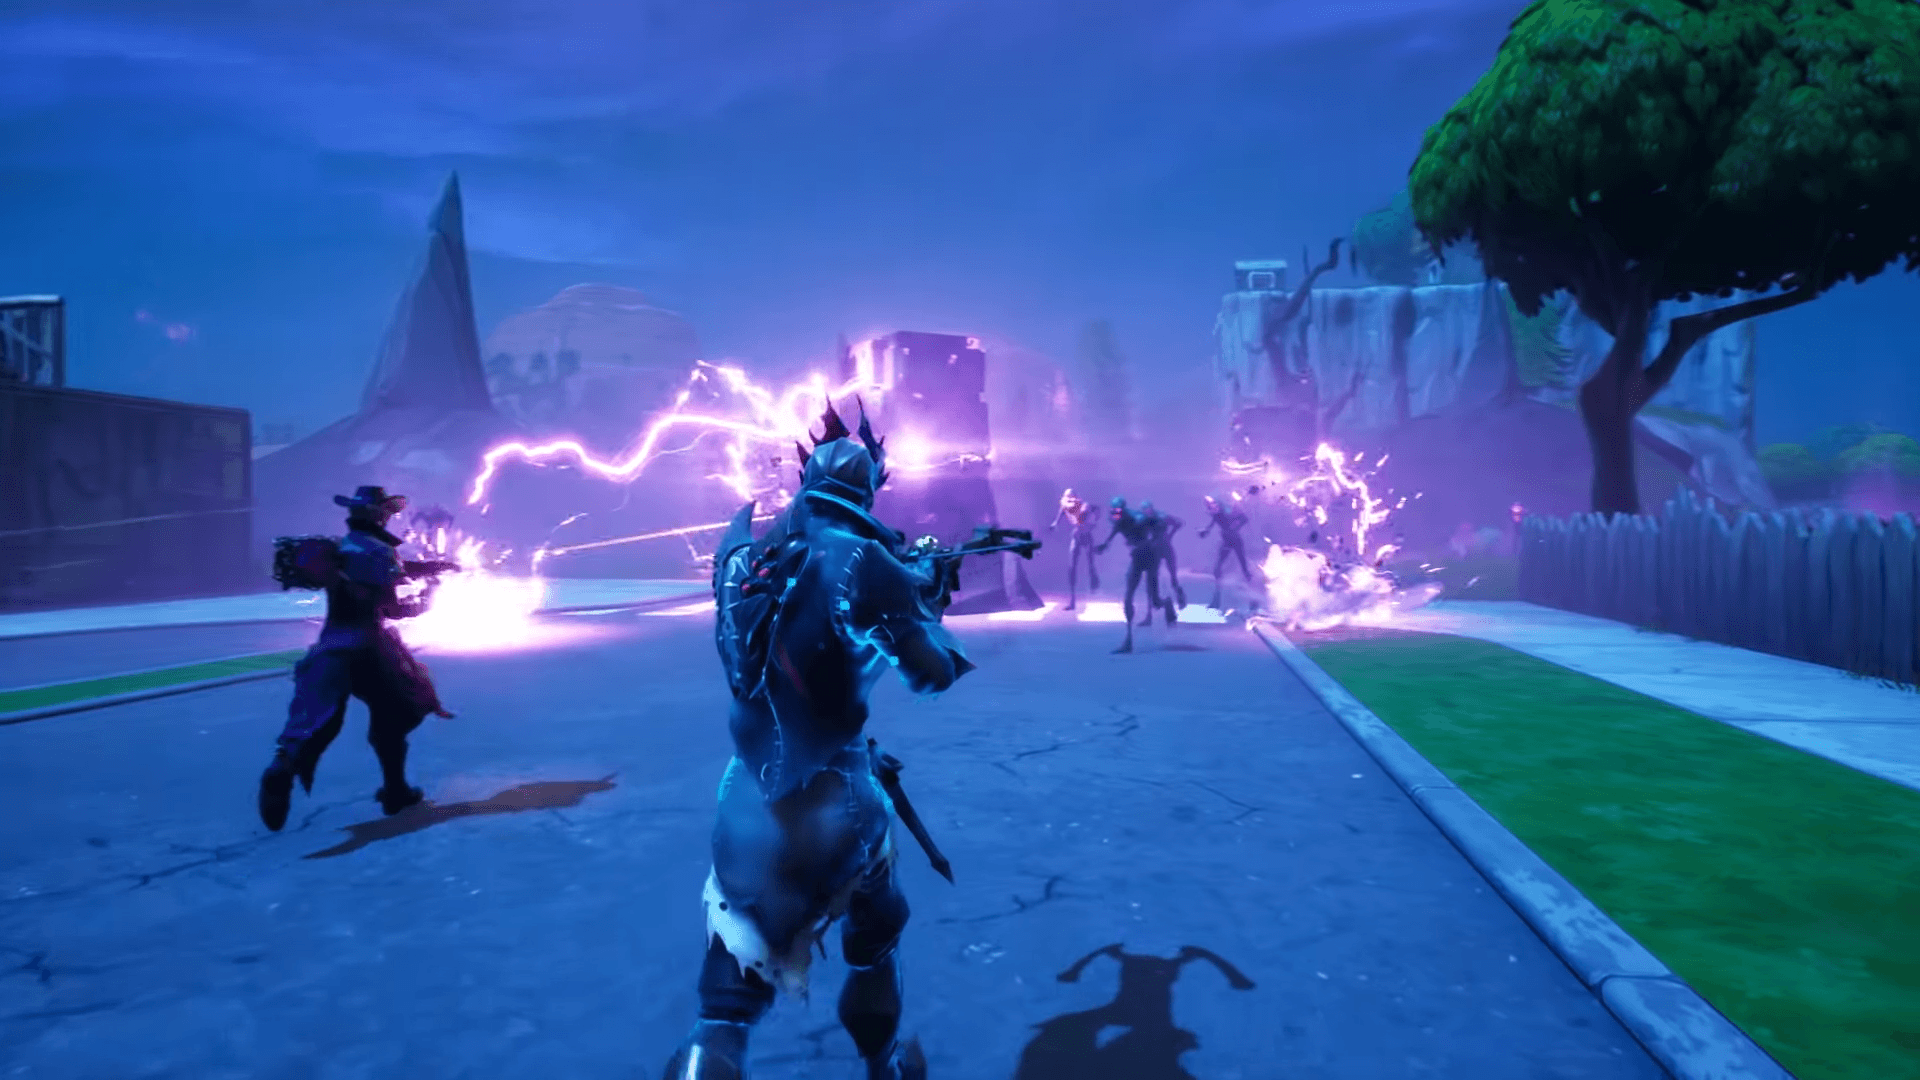 Fortnitemares is temporarily disabled in Fortnite: Battle Royale due